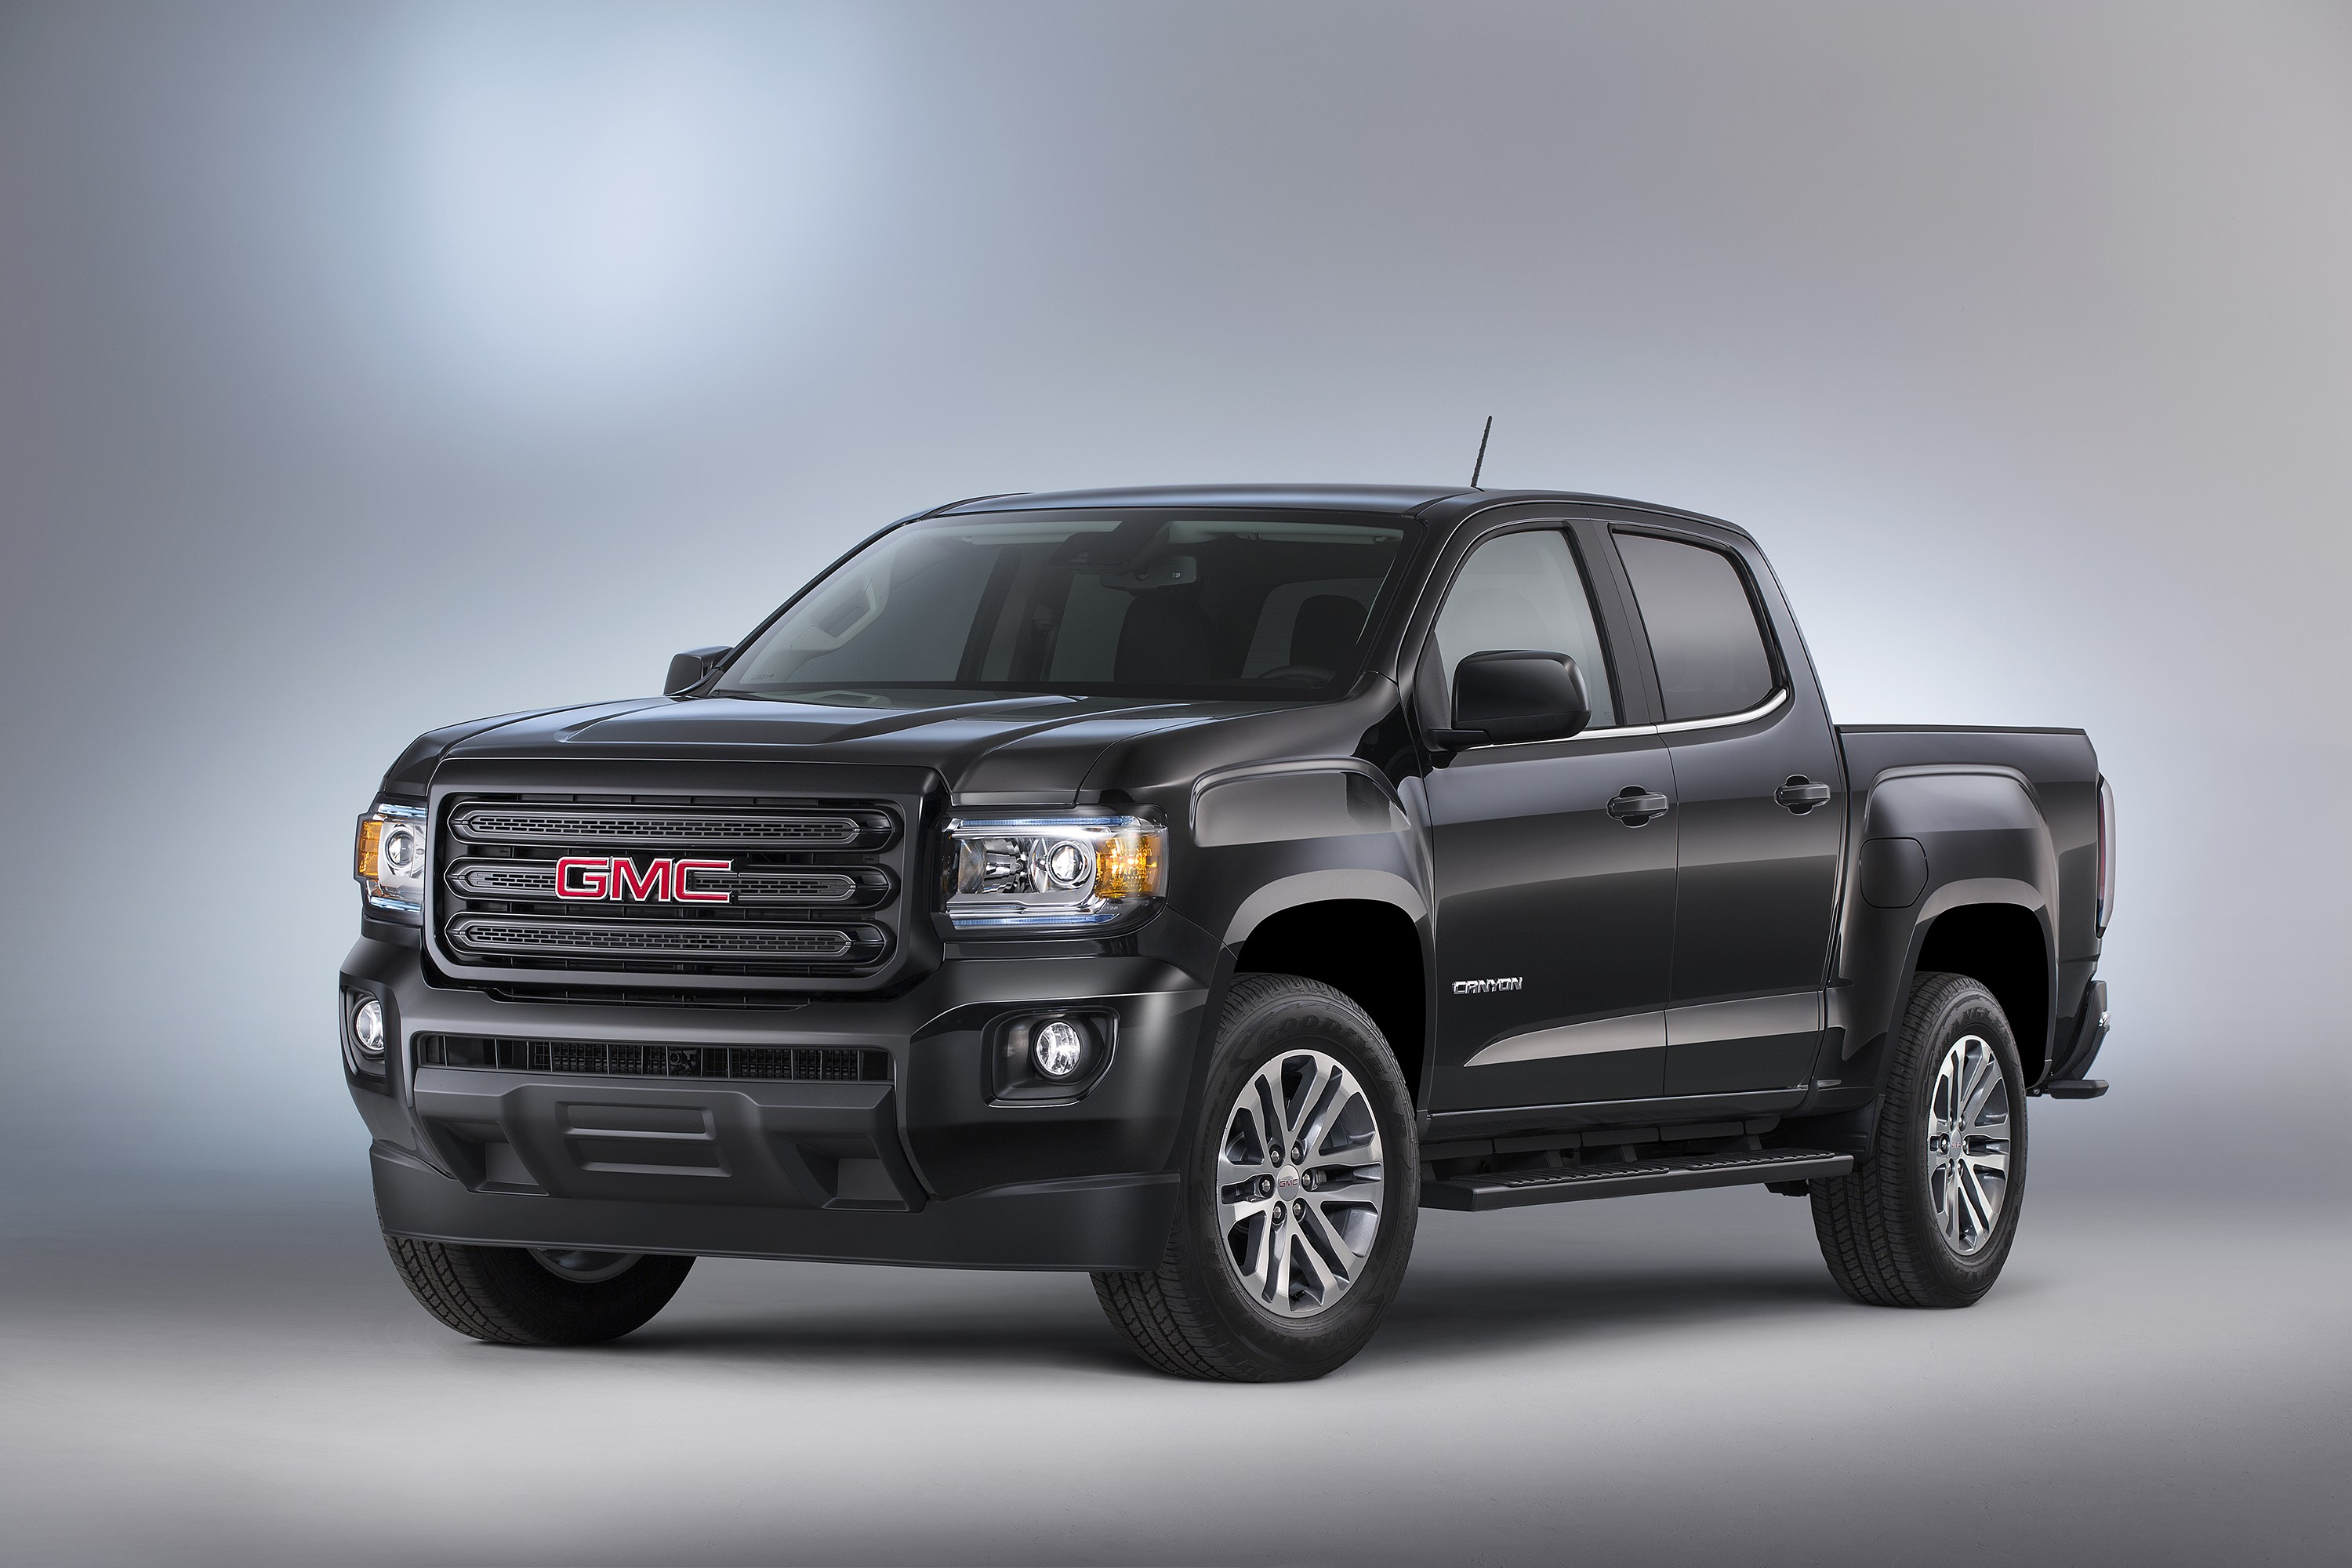 Gmc Special Edition Trucks >> 2015 GMC Canyon Nightfall Edition is a Killer-Looking Pickup Truck [Photo Gallery] - autoevolution